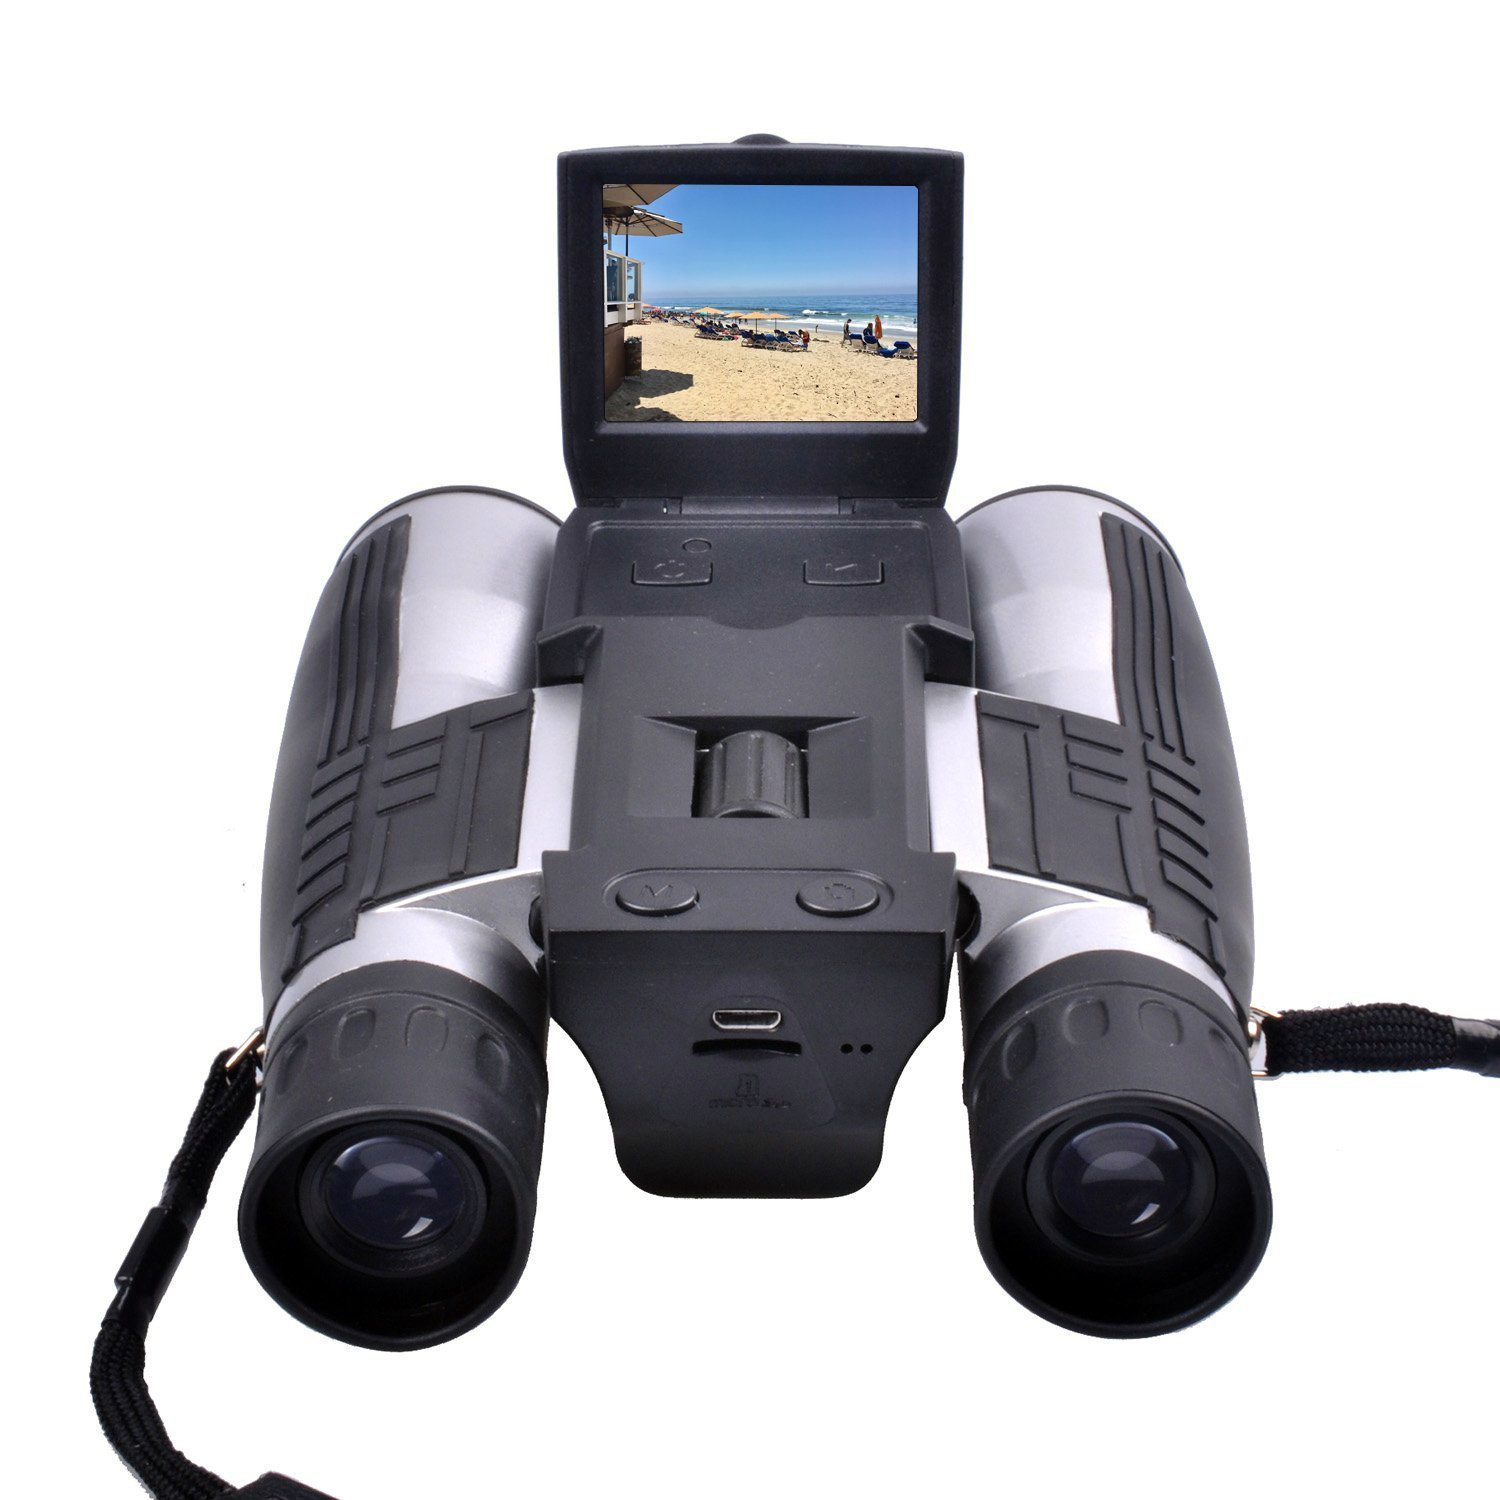 CamKing FS608 720P Digital Camera Binoculars Camera with 2'' LCD Screen by CamKing